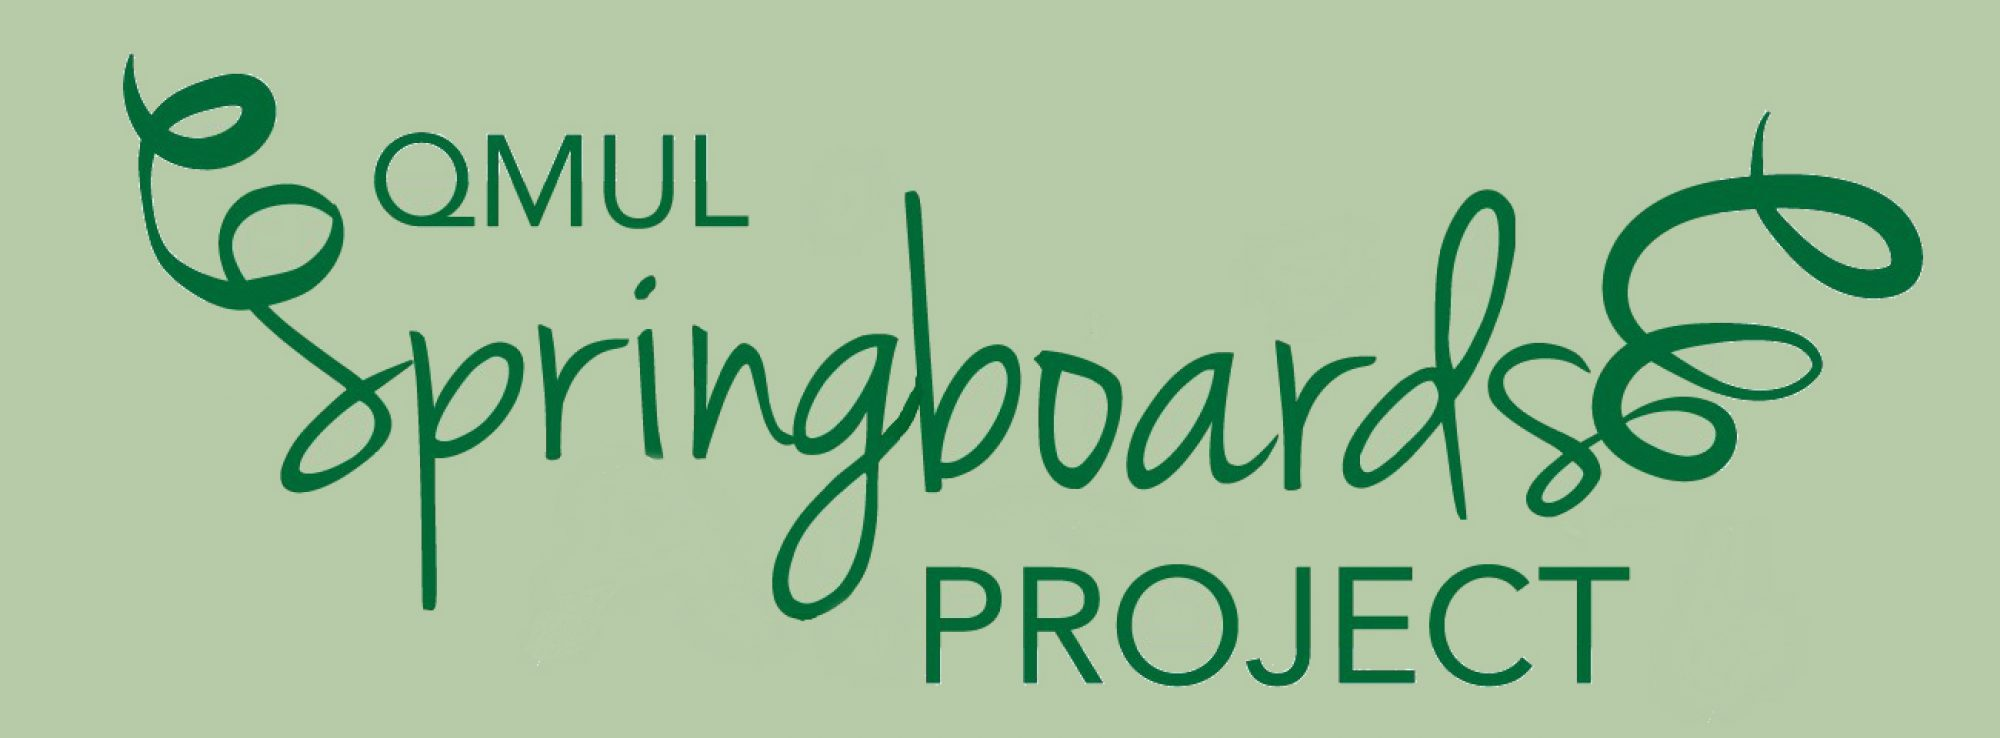 Springboards Project